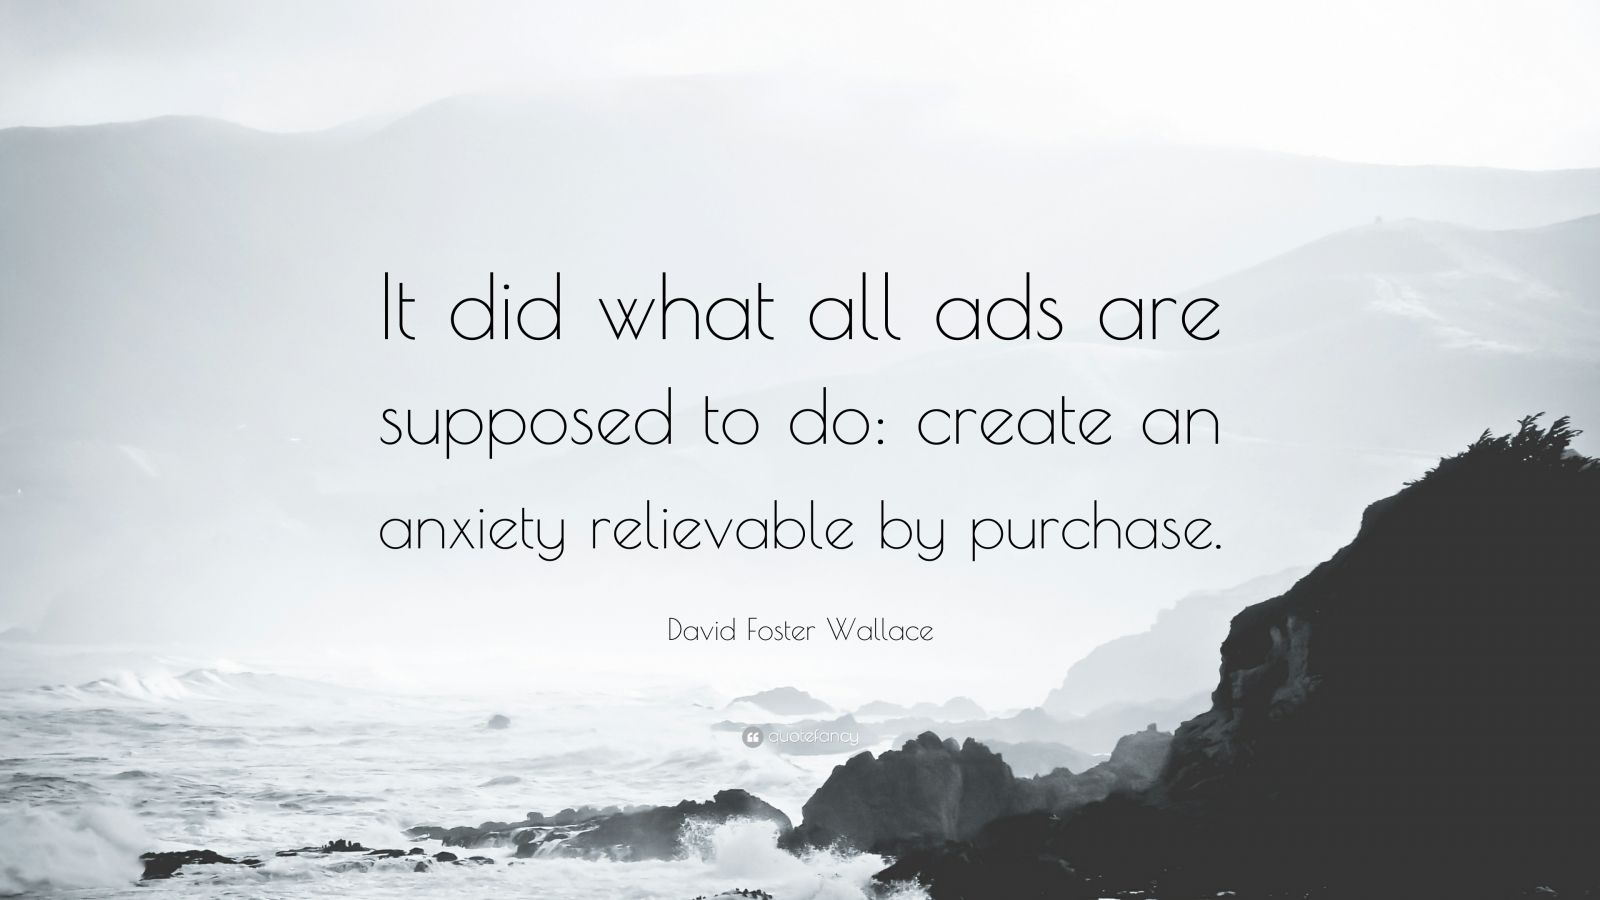 David Foster Wallace Quotes Wallpaper David Foster Wallace Quote It Did What All Ads Are